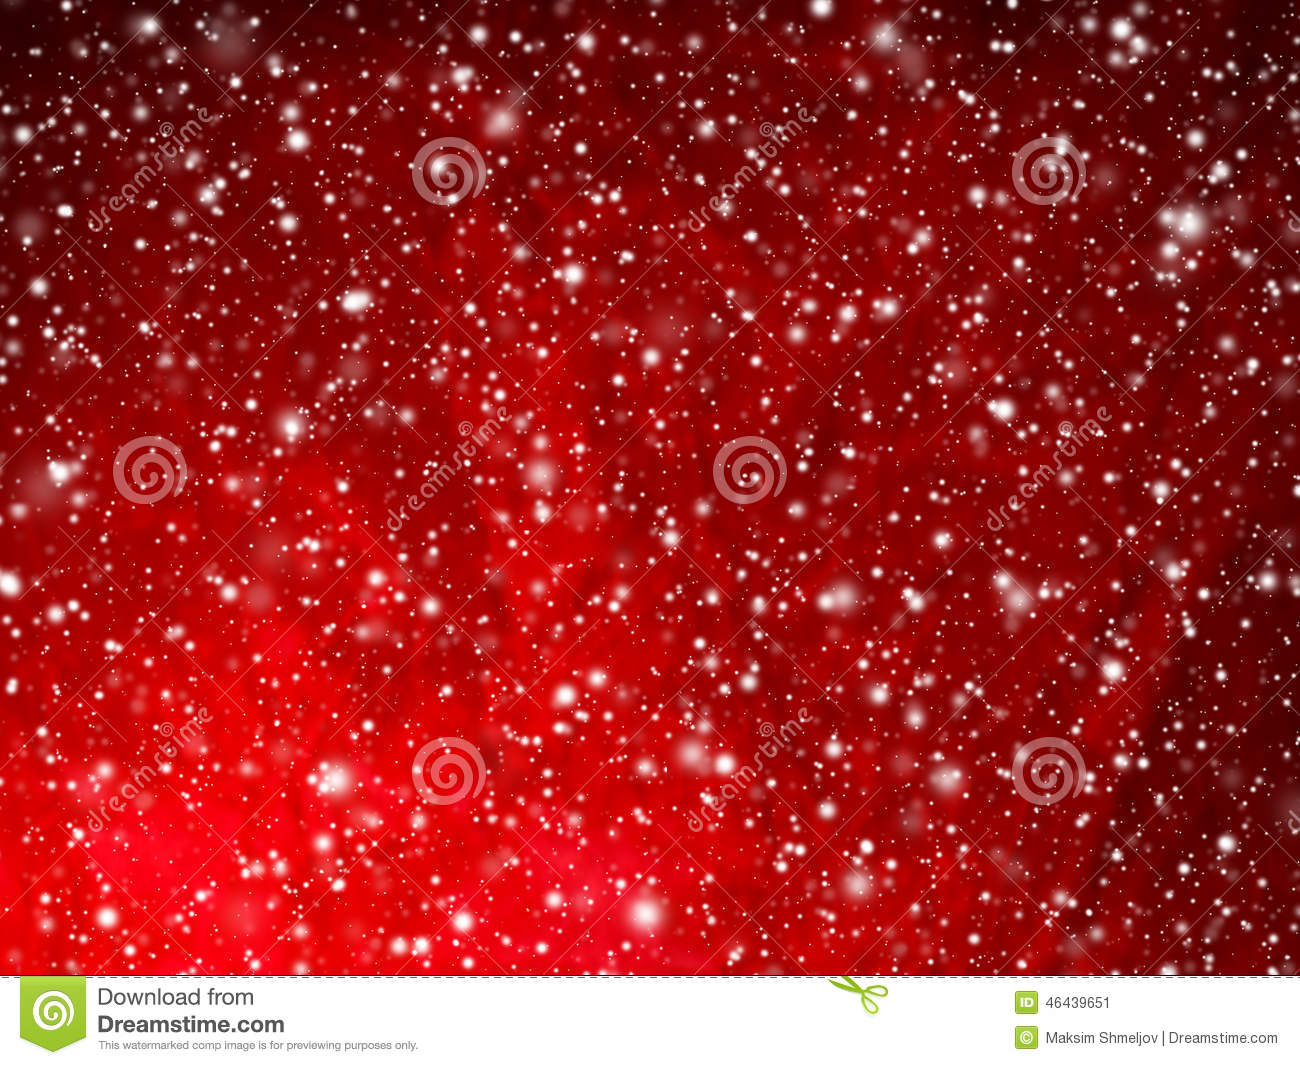 Bright Red Abstract Christmas Background With Falling Snow Stock Photo ...